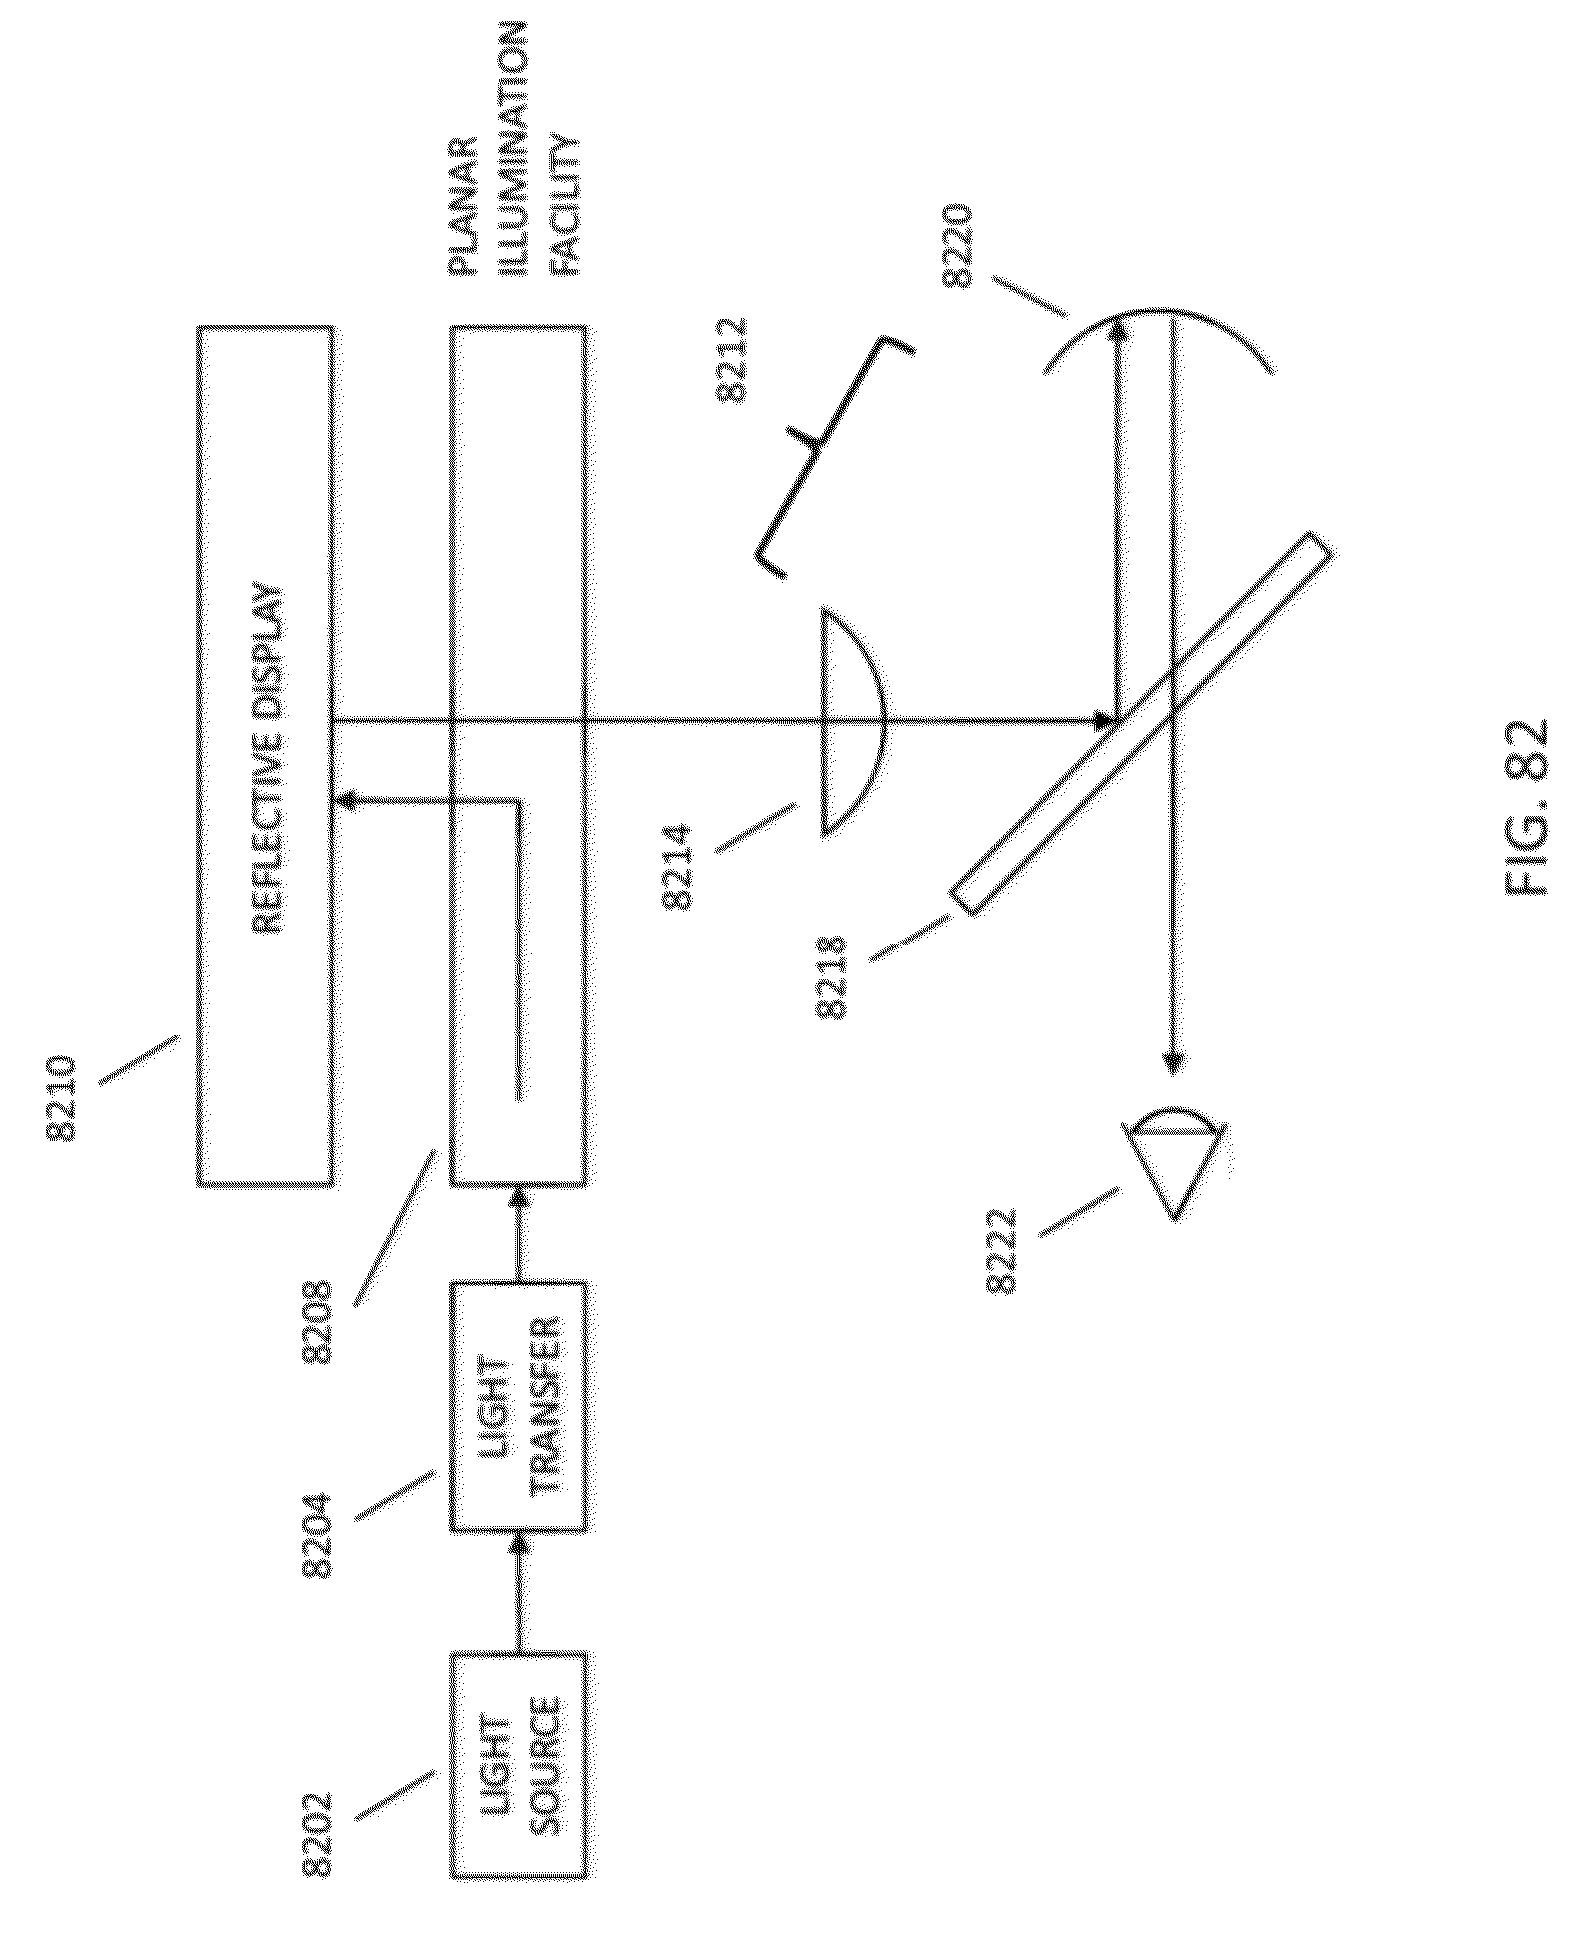 Patent Us 9182596 B2 Section Cutaway Diagram Of A Dry Cell Battery With Text Labels